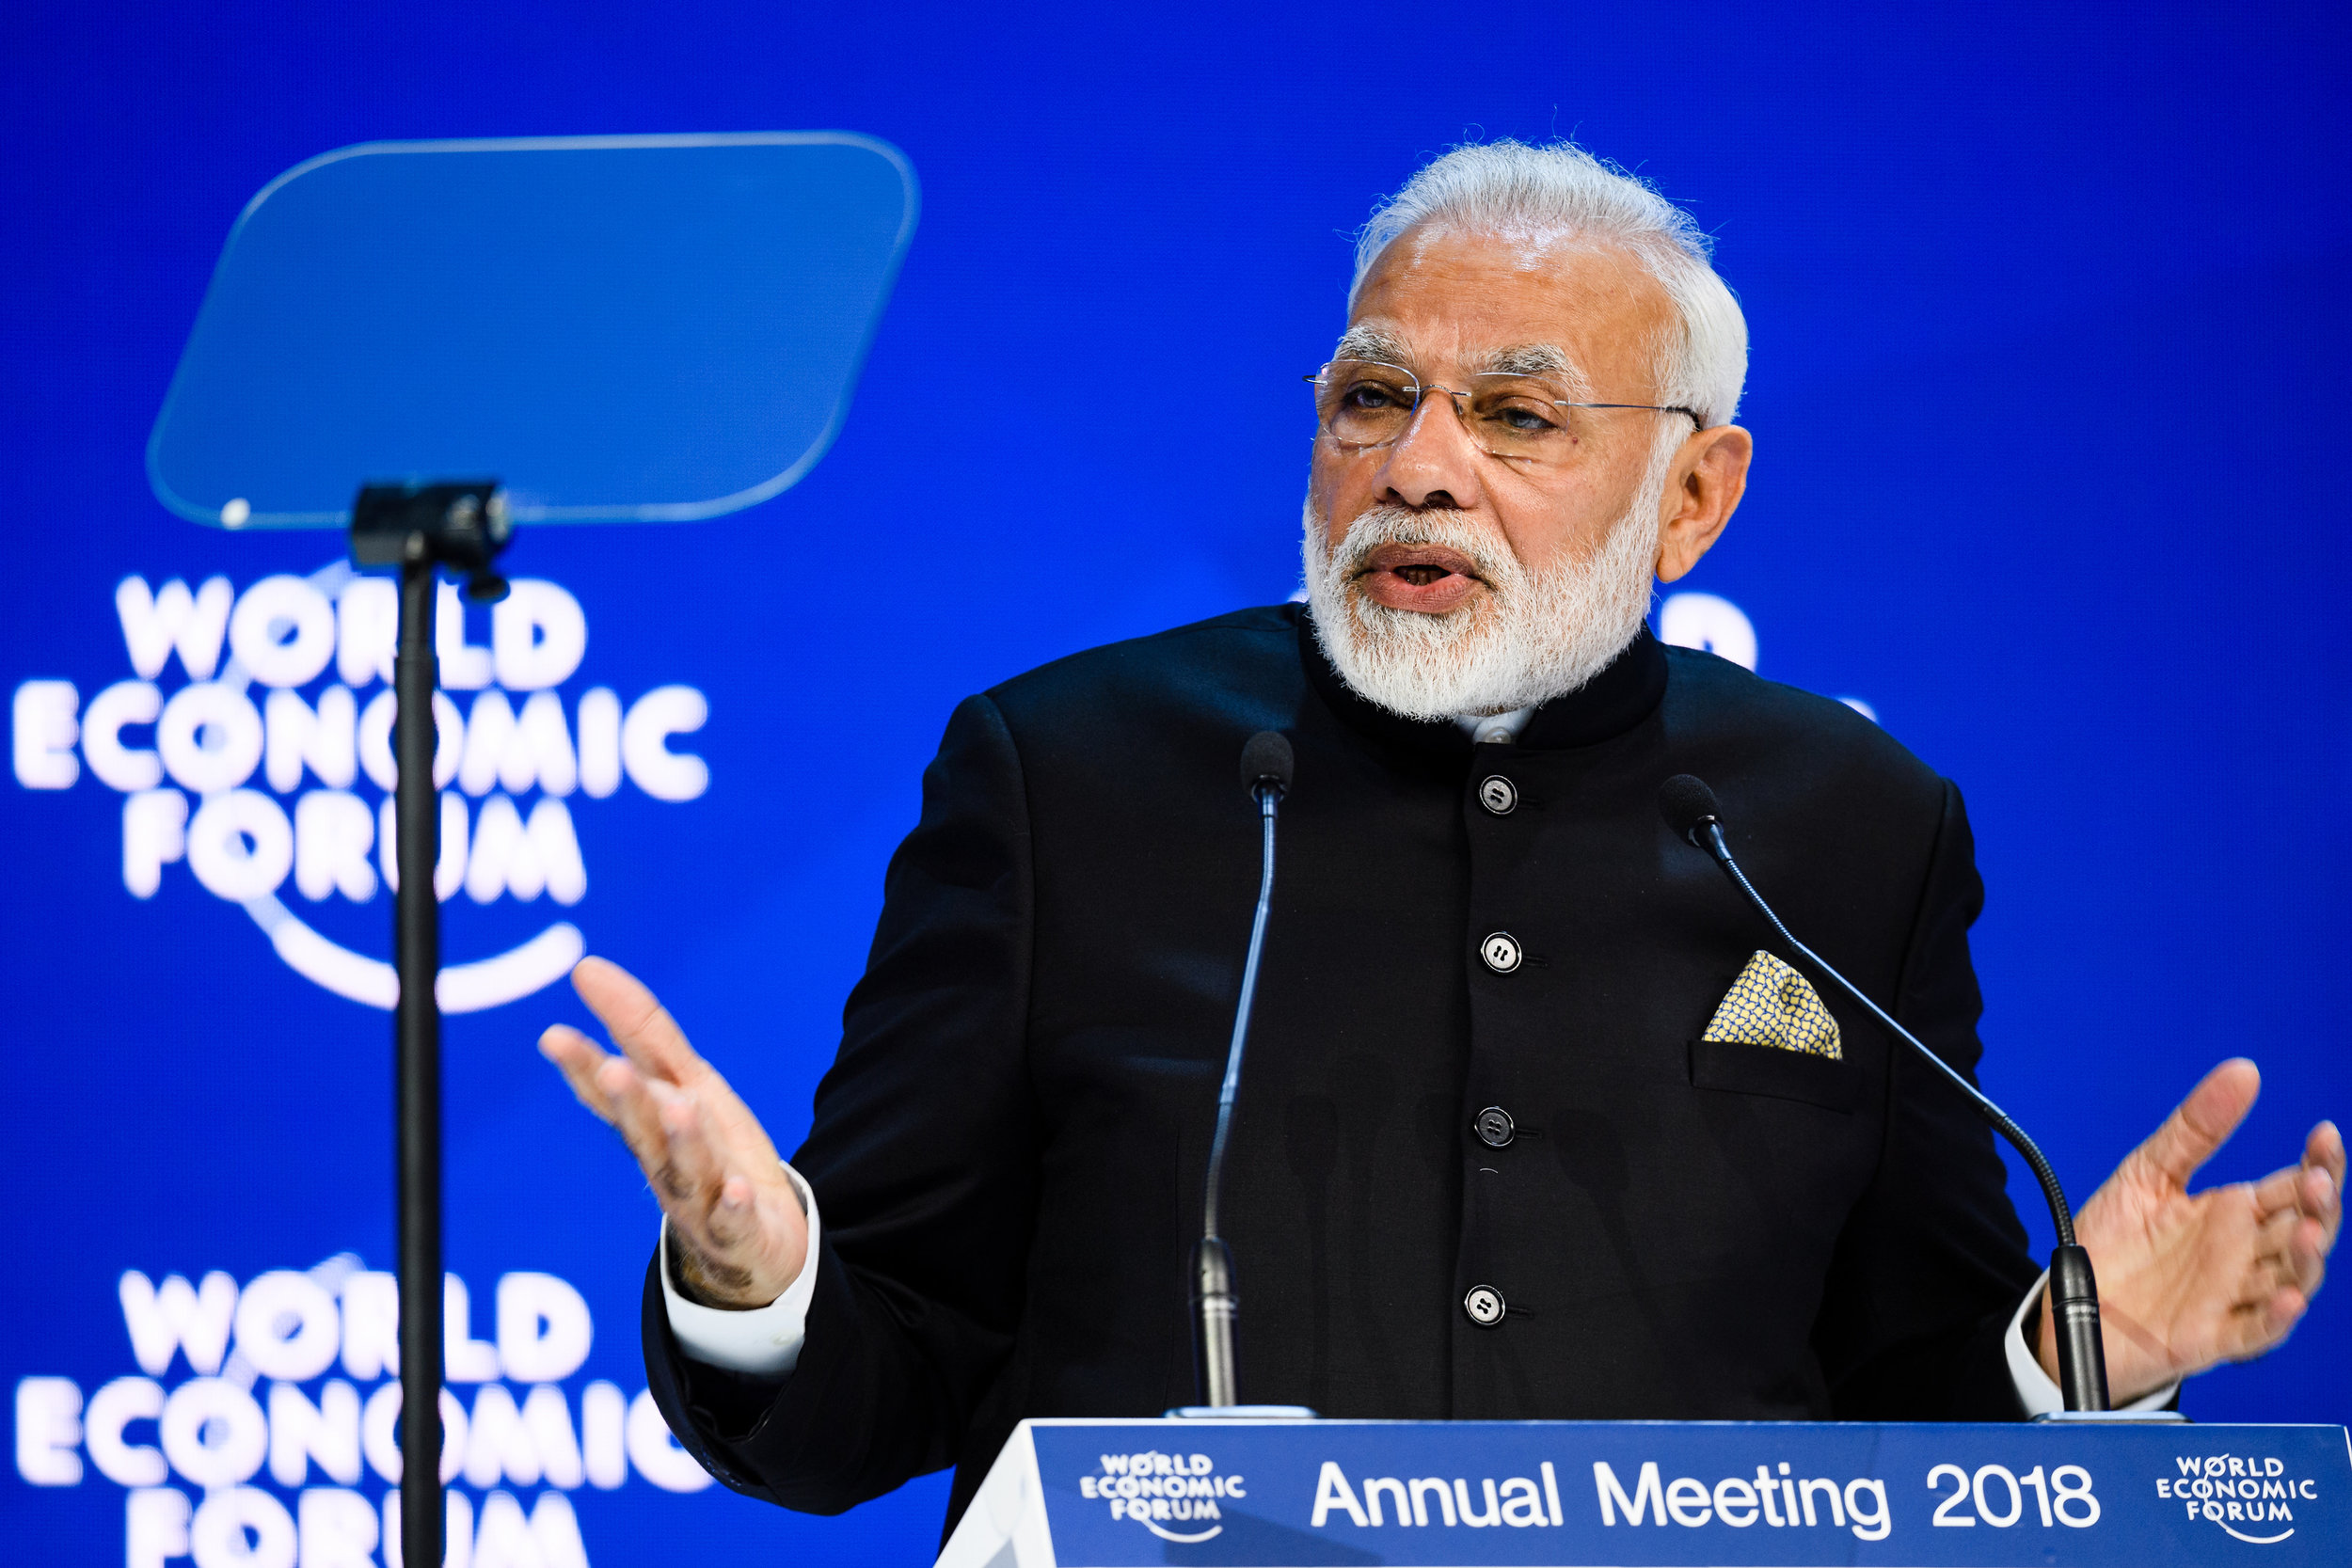 Opening Plenary with Narendra Modi, Prime Minister of India